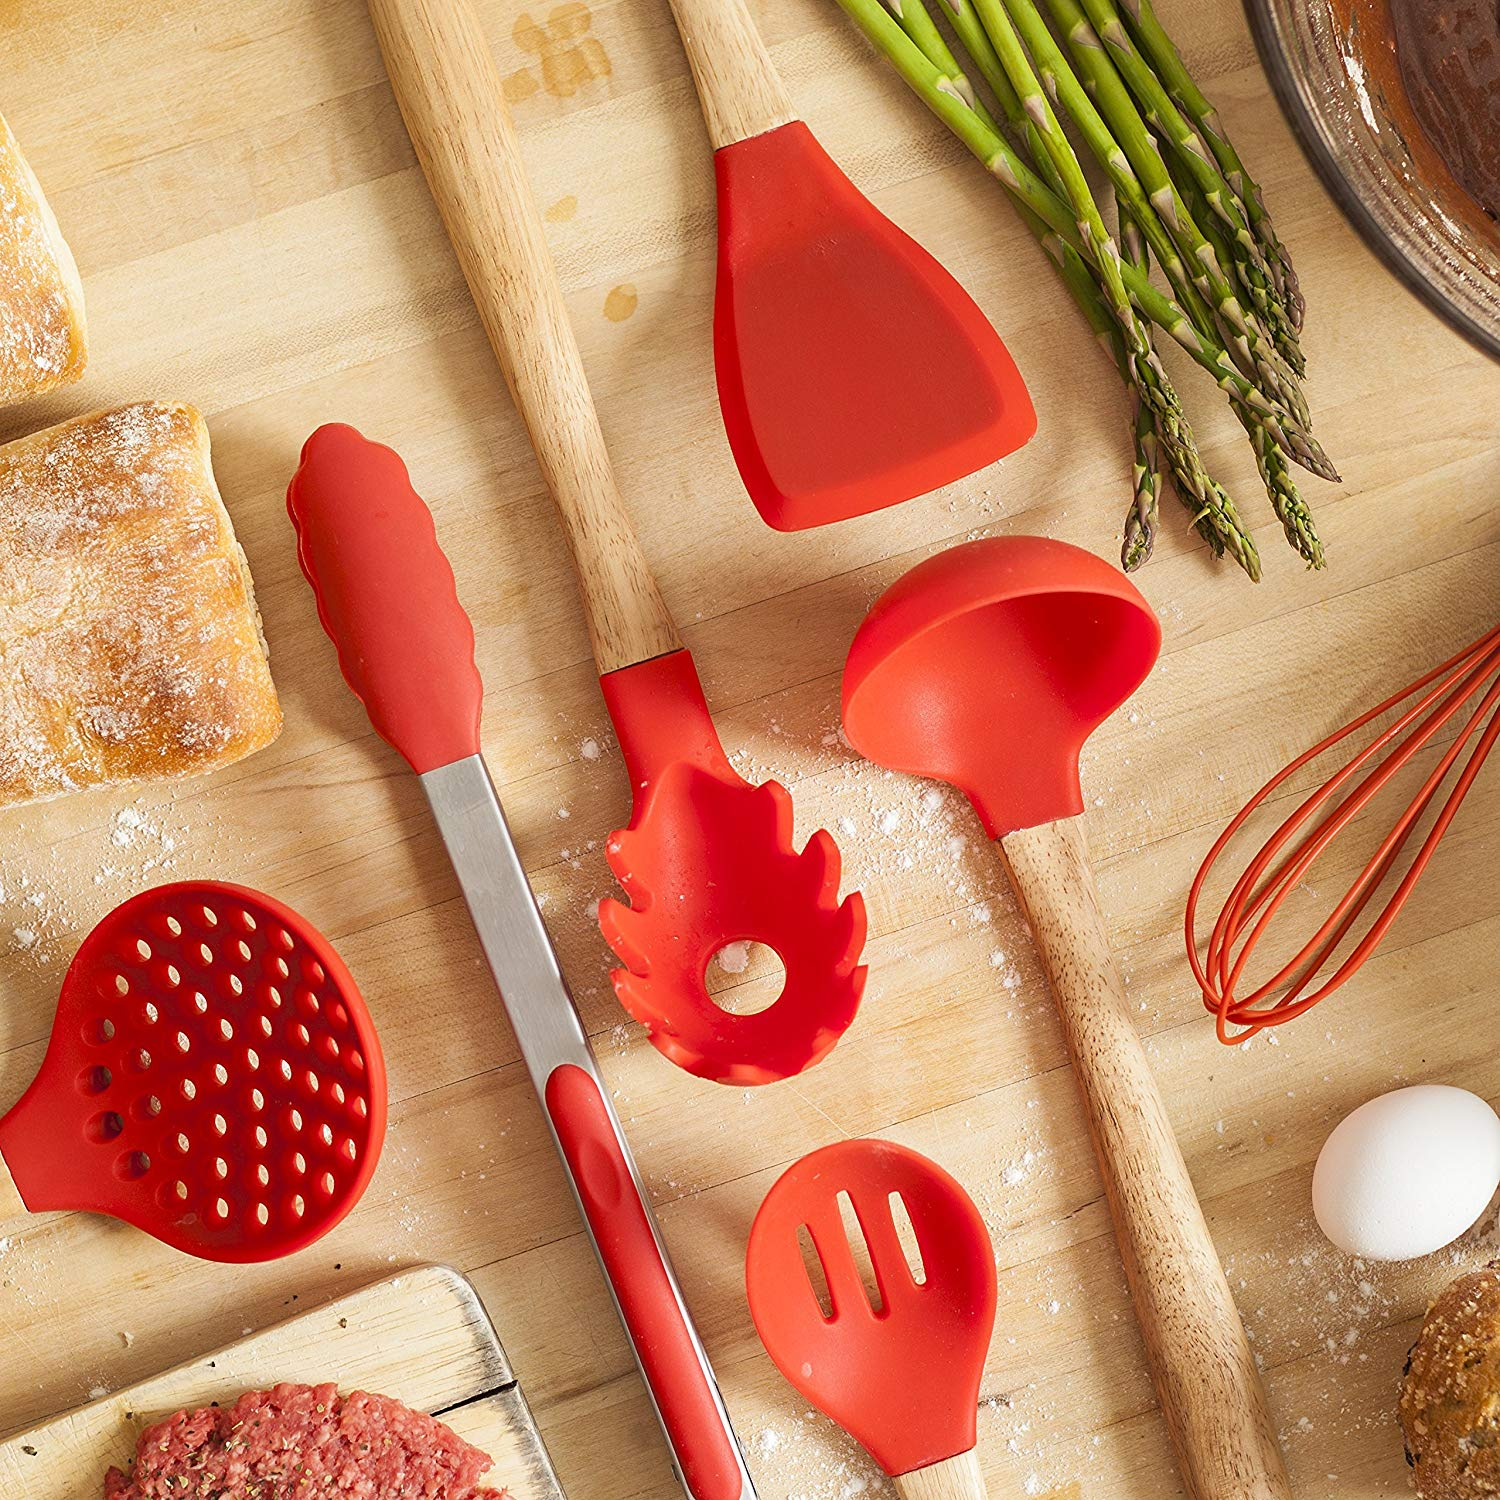 Silicone Kitchen Utensils Set with Wooden Handle - 7 Piece Set - Multiple Kitchen Accessories for Cooking - BPA Free, Non-Toxic, Heat Resistance, Eco-friendly, and Red Non-Stick Kitchen Utensils Set